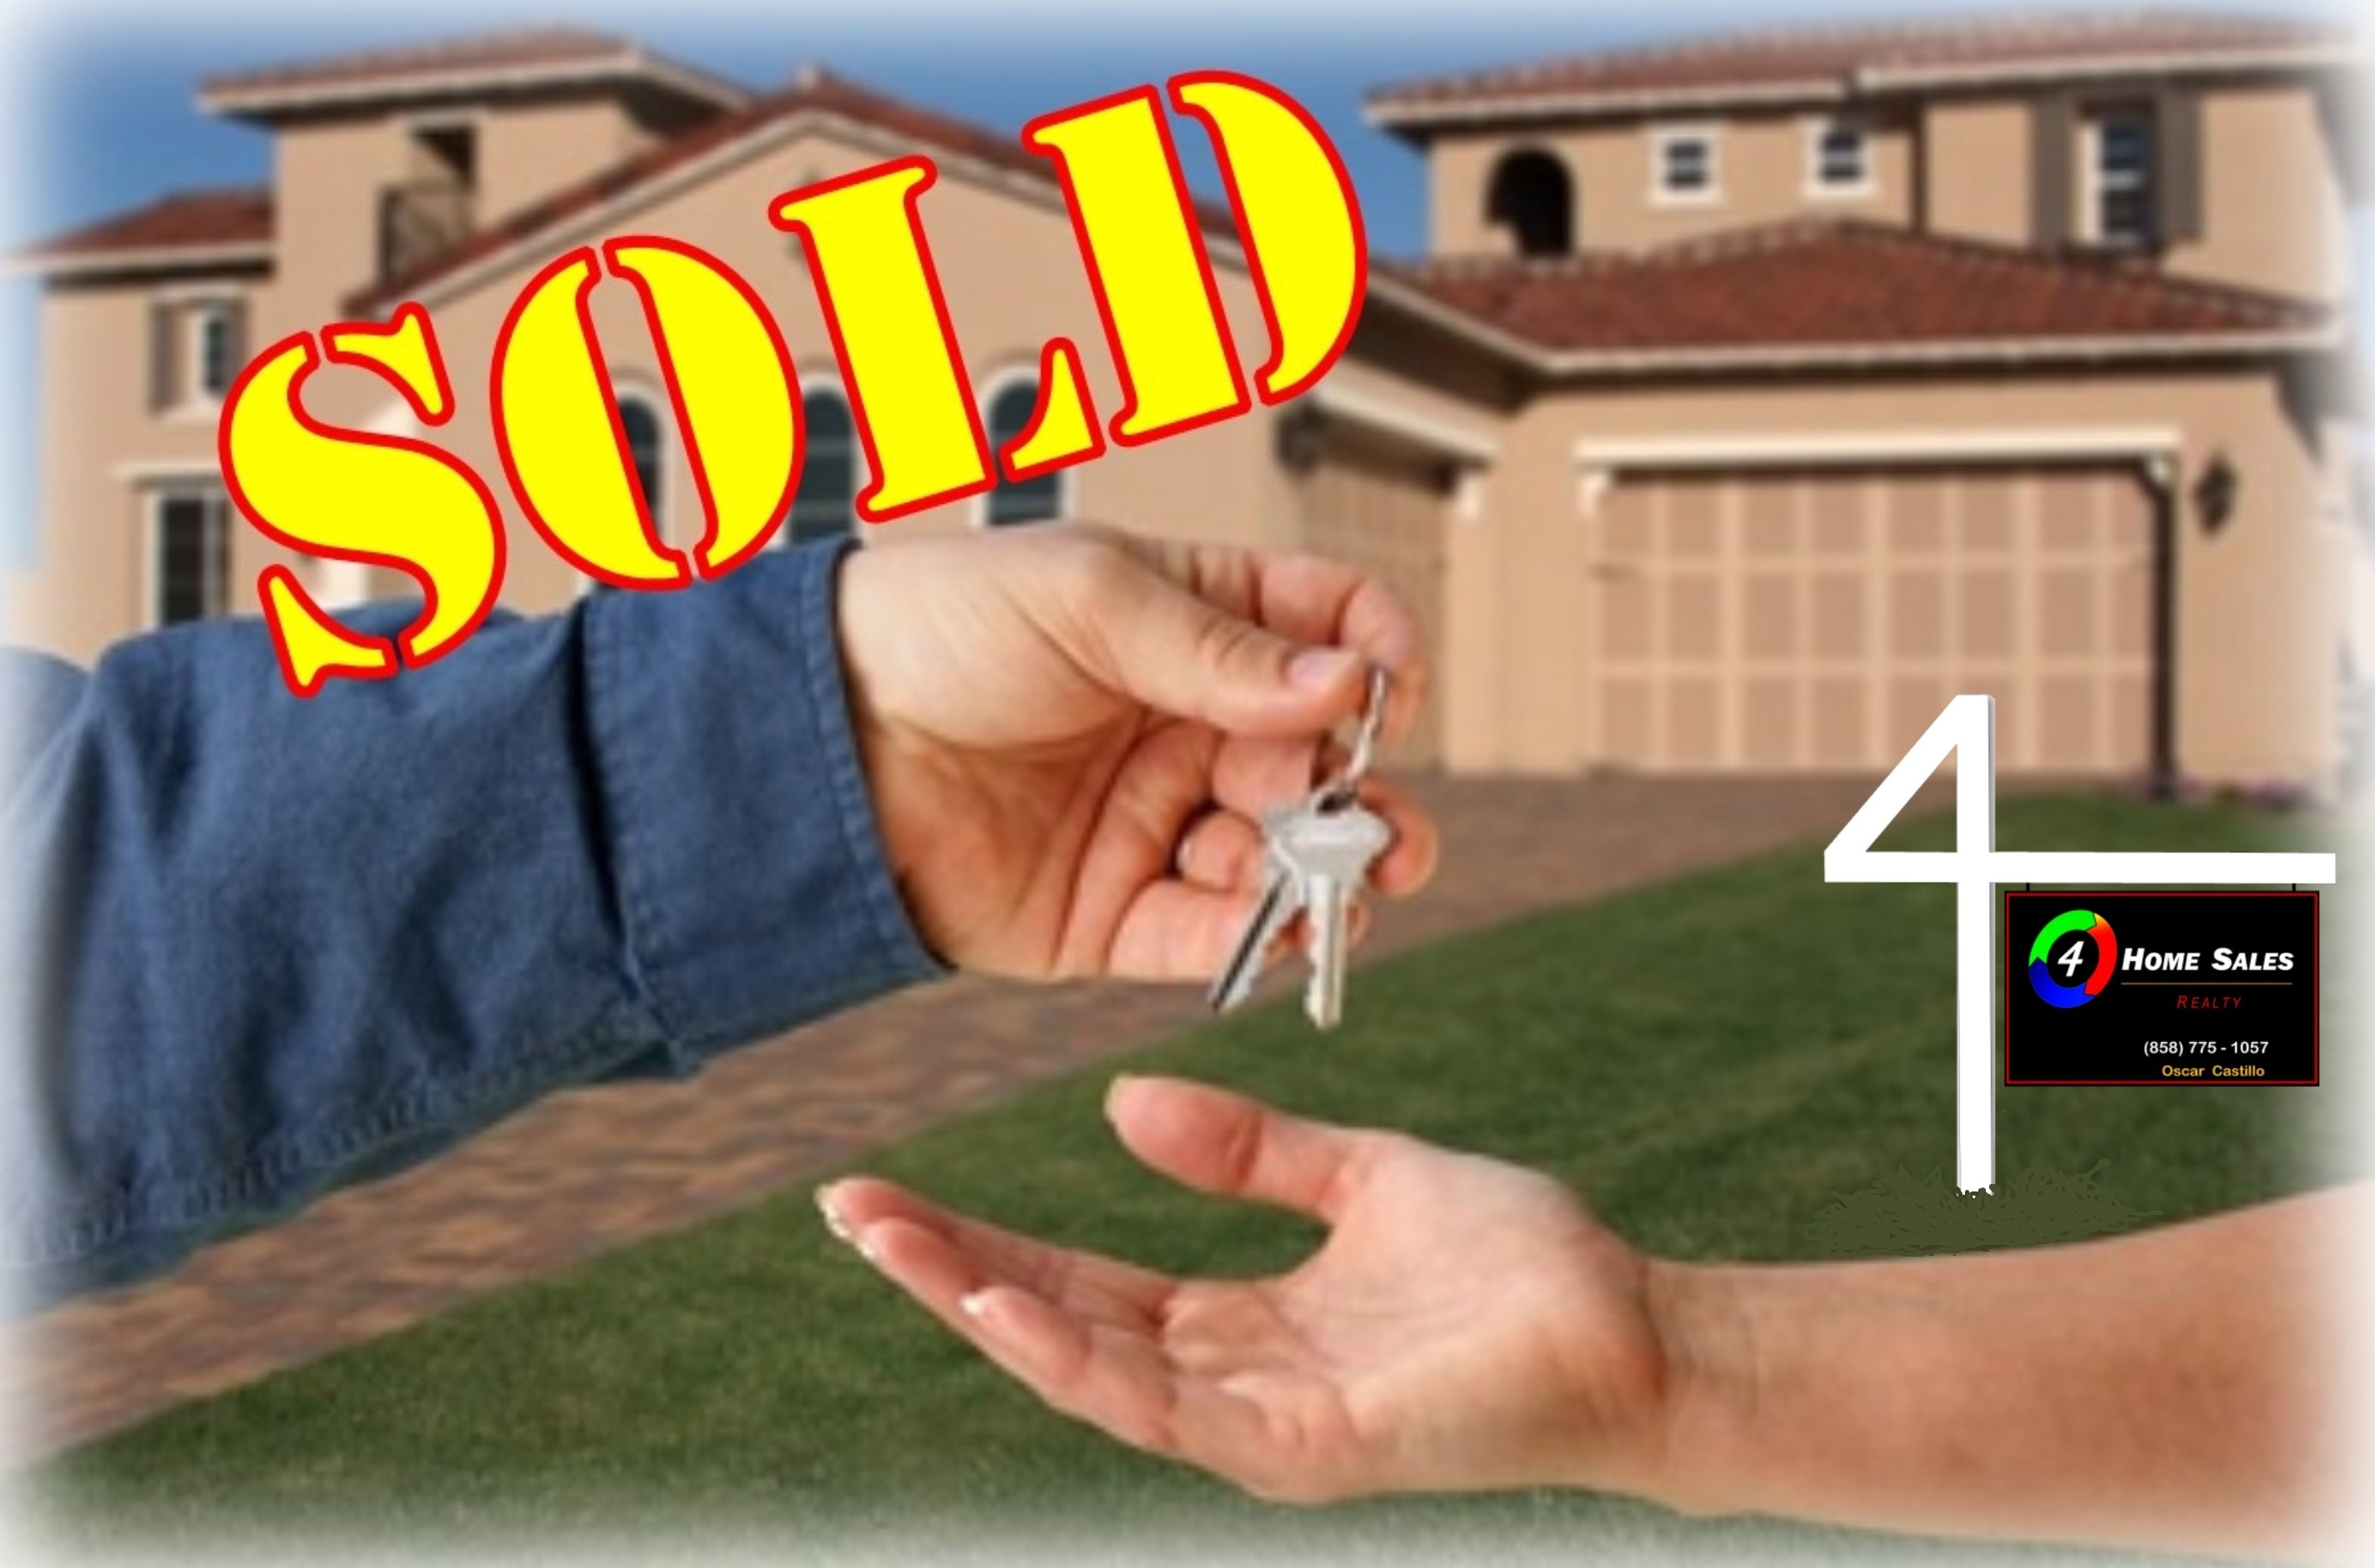 SOLD:  4 HOMES SALES - Realty  (858)775-1057